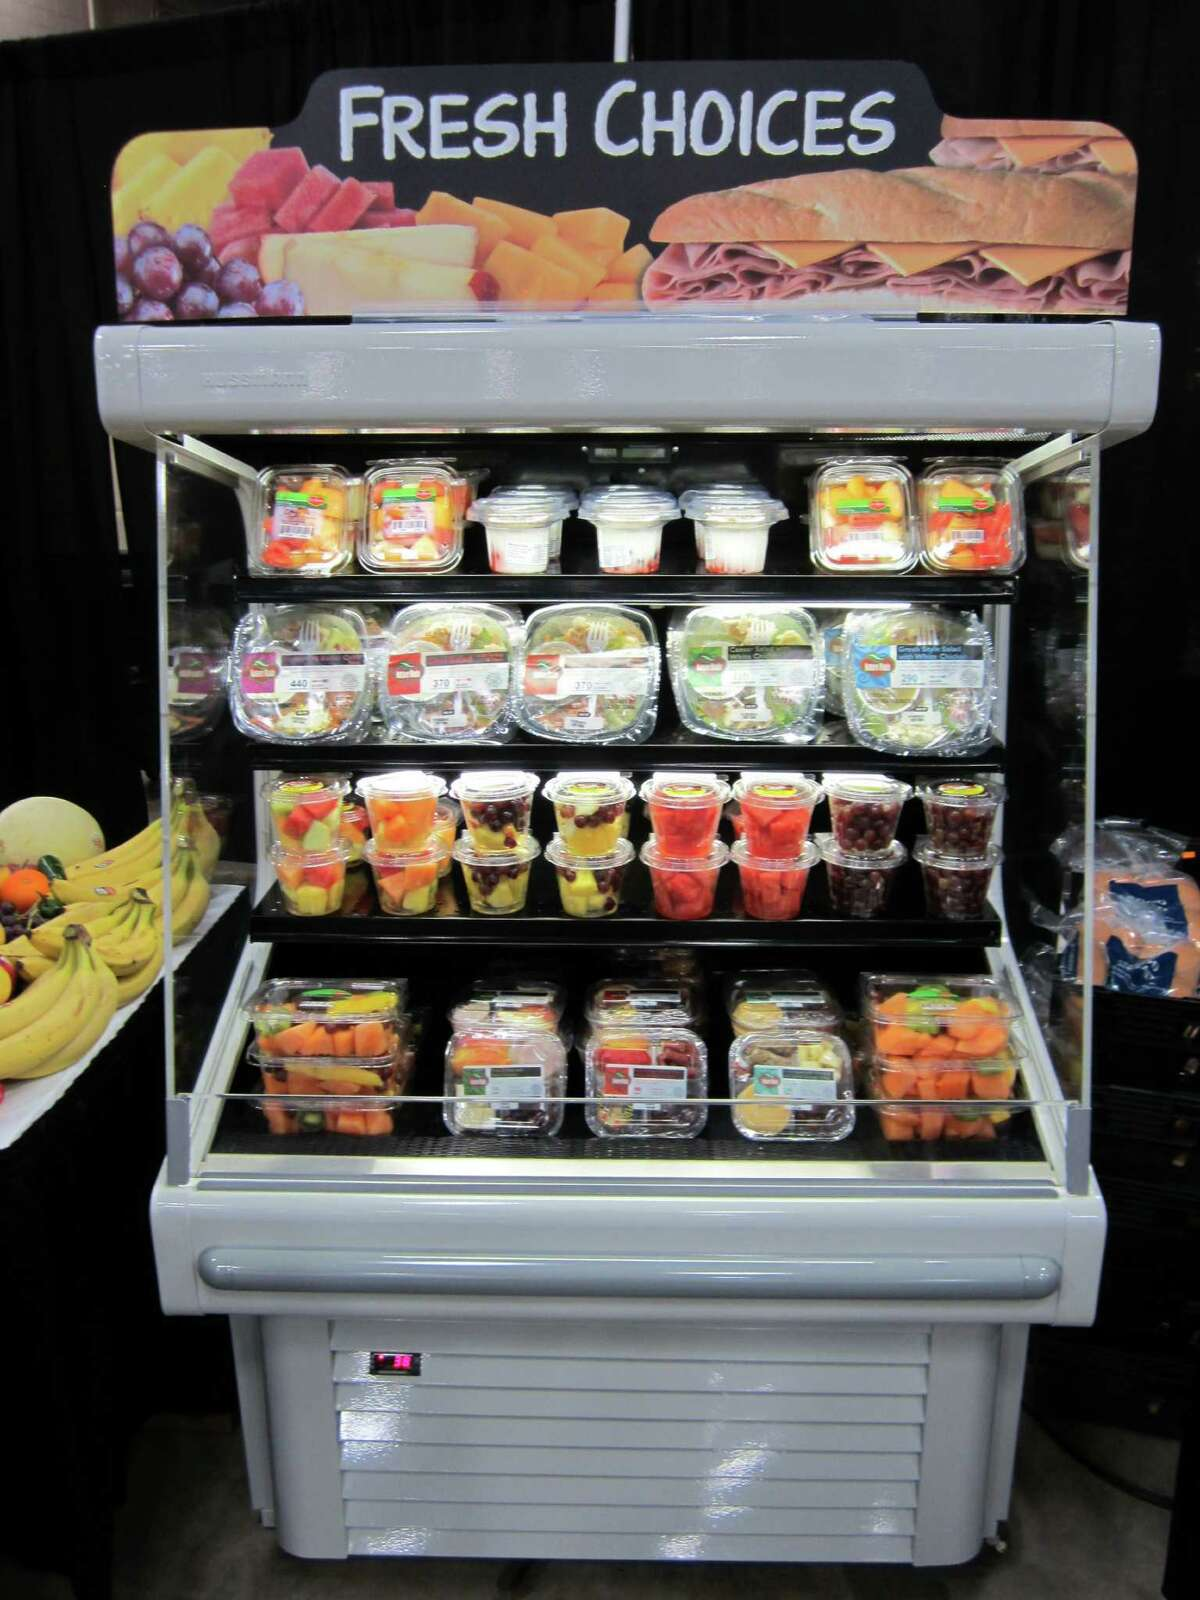 Corner Store managers could select healthier options to include on their store shelves as part of a push by CST Brands Inc. to capture more sales from Millennial shoppers.